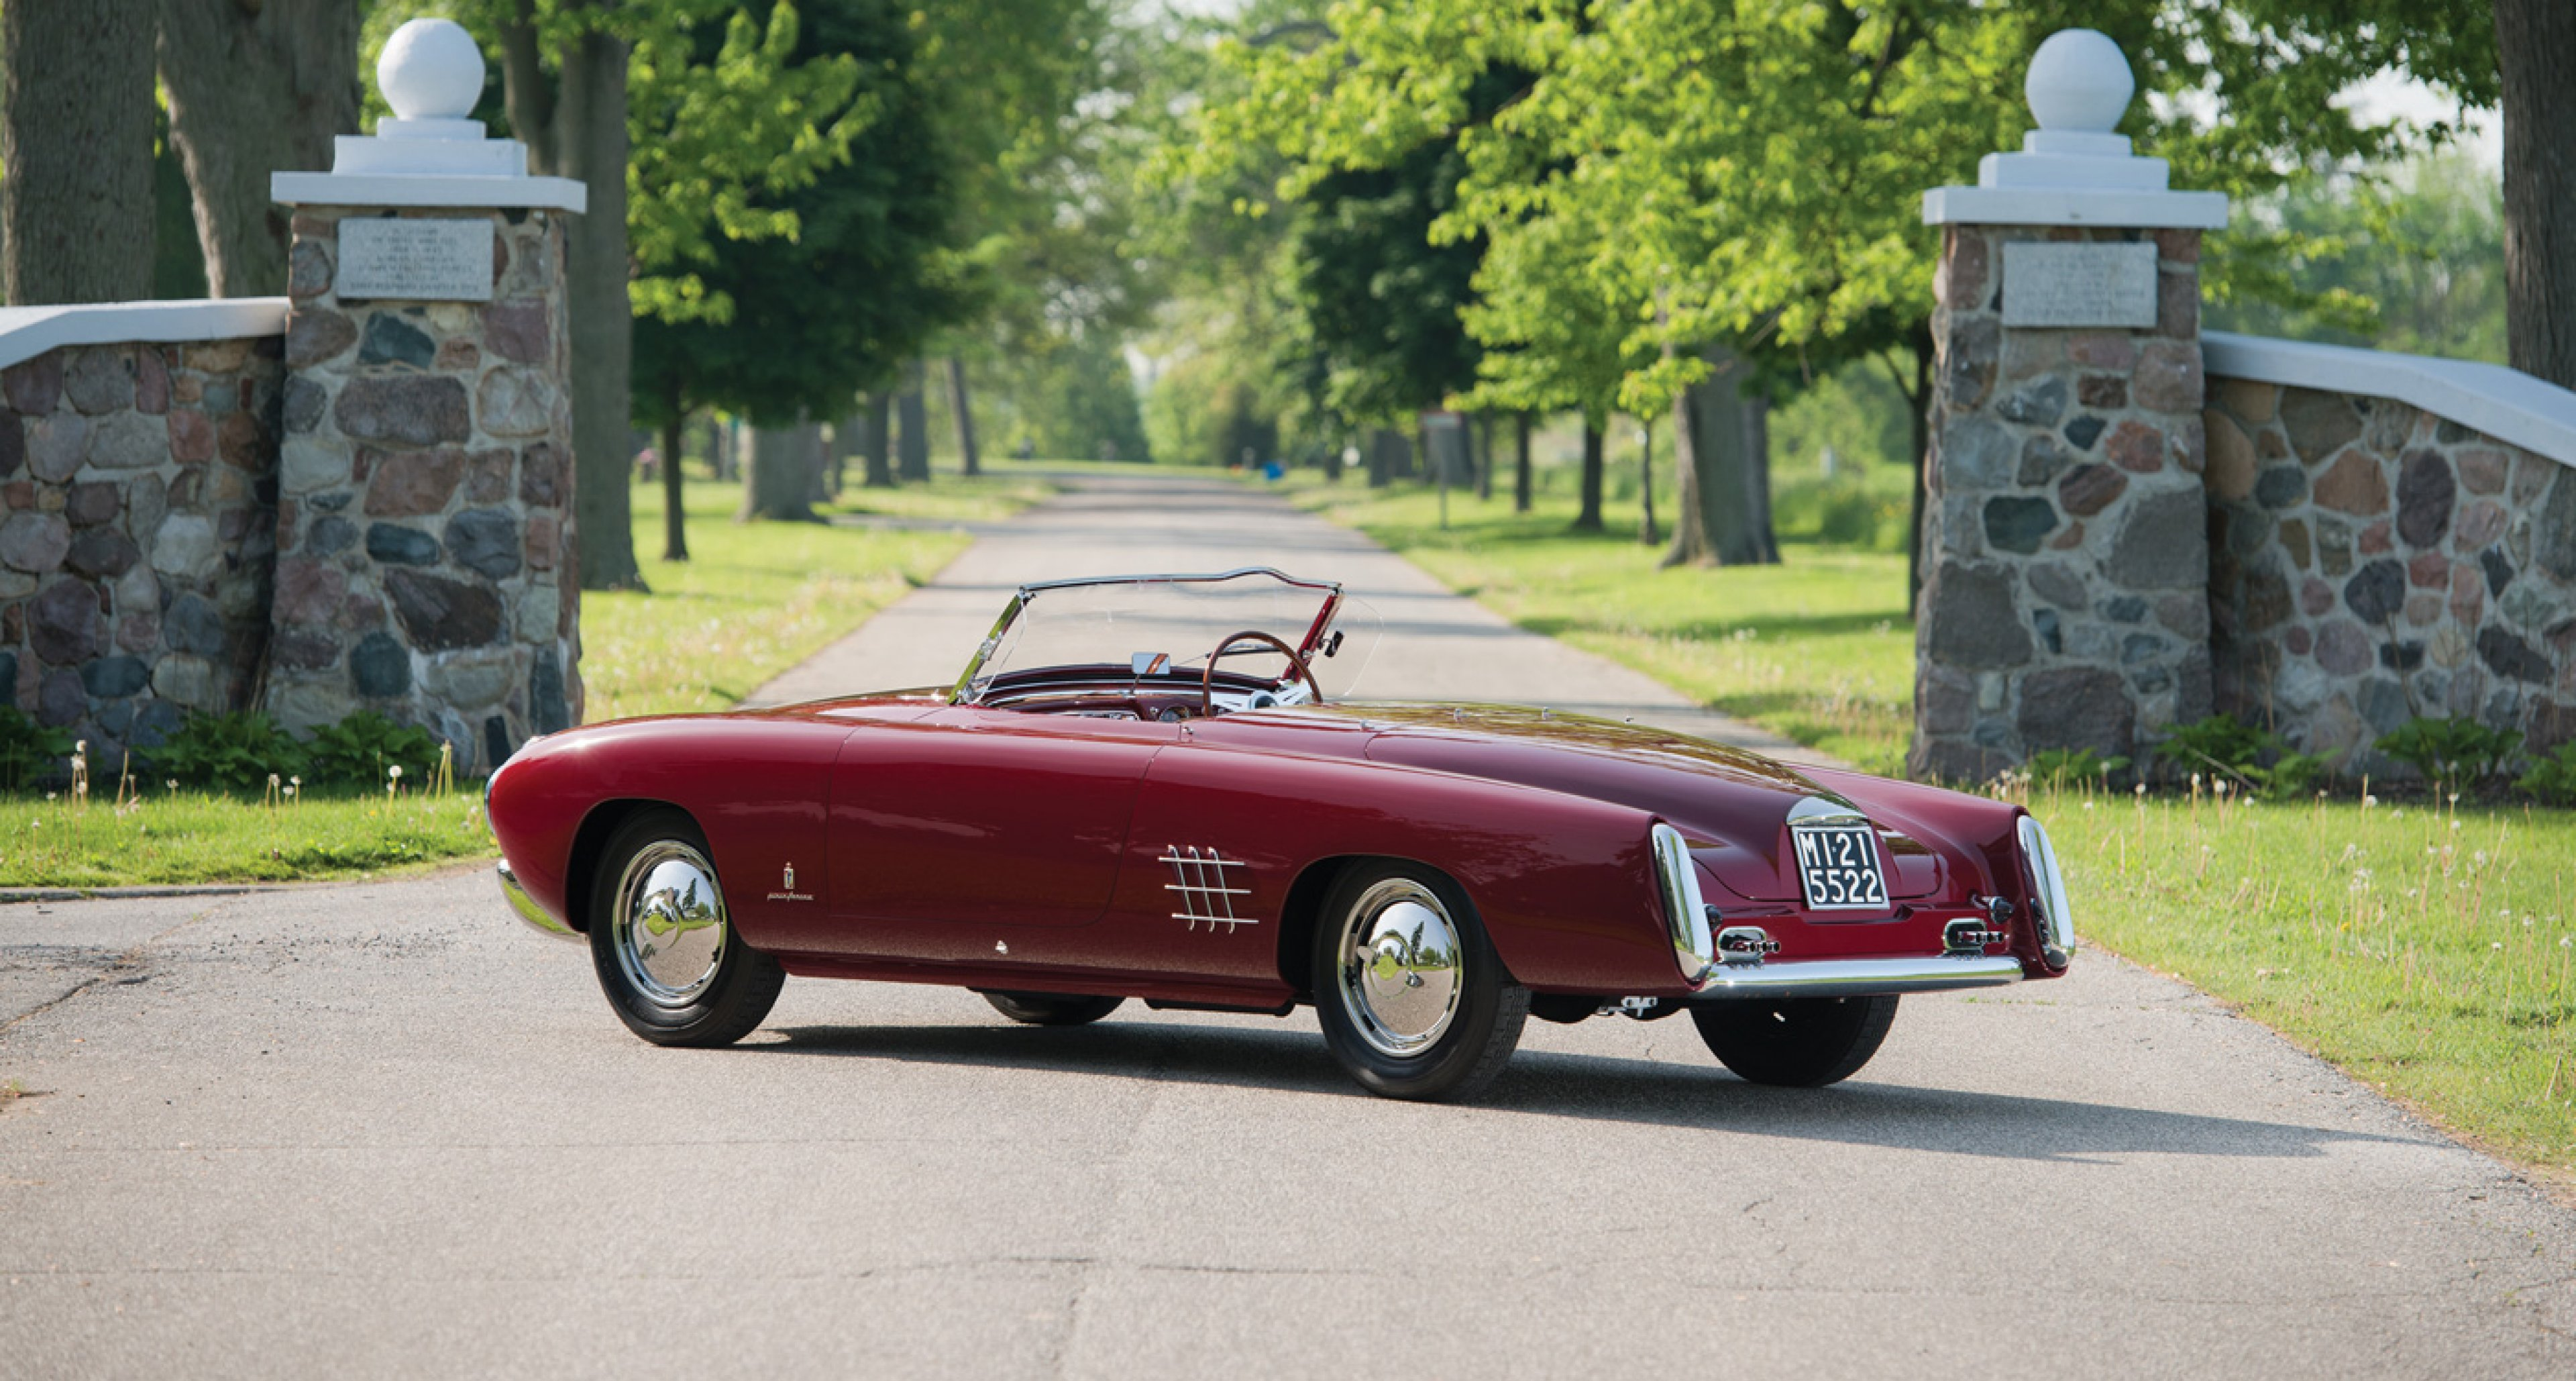 1953 Lancia Aurelia PF200 C Spider by Pinin Farina to be auctioned at RM's Monterey auction 2014